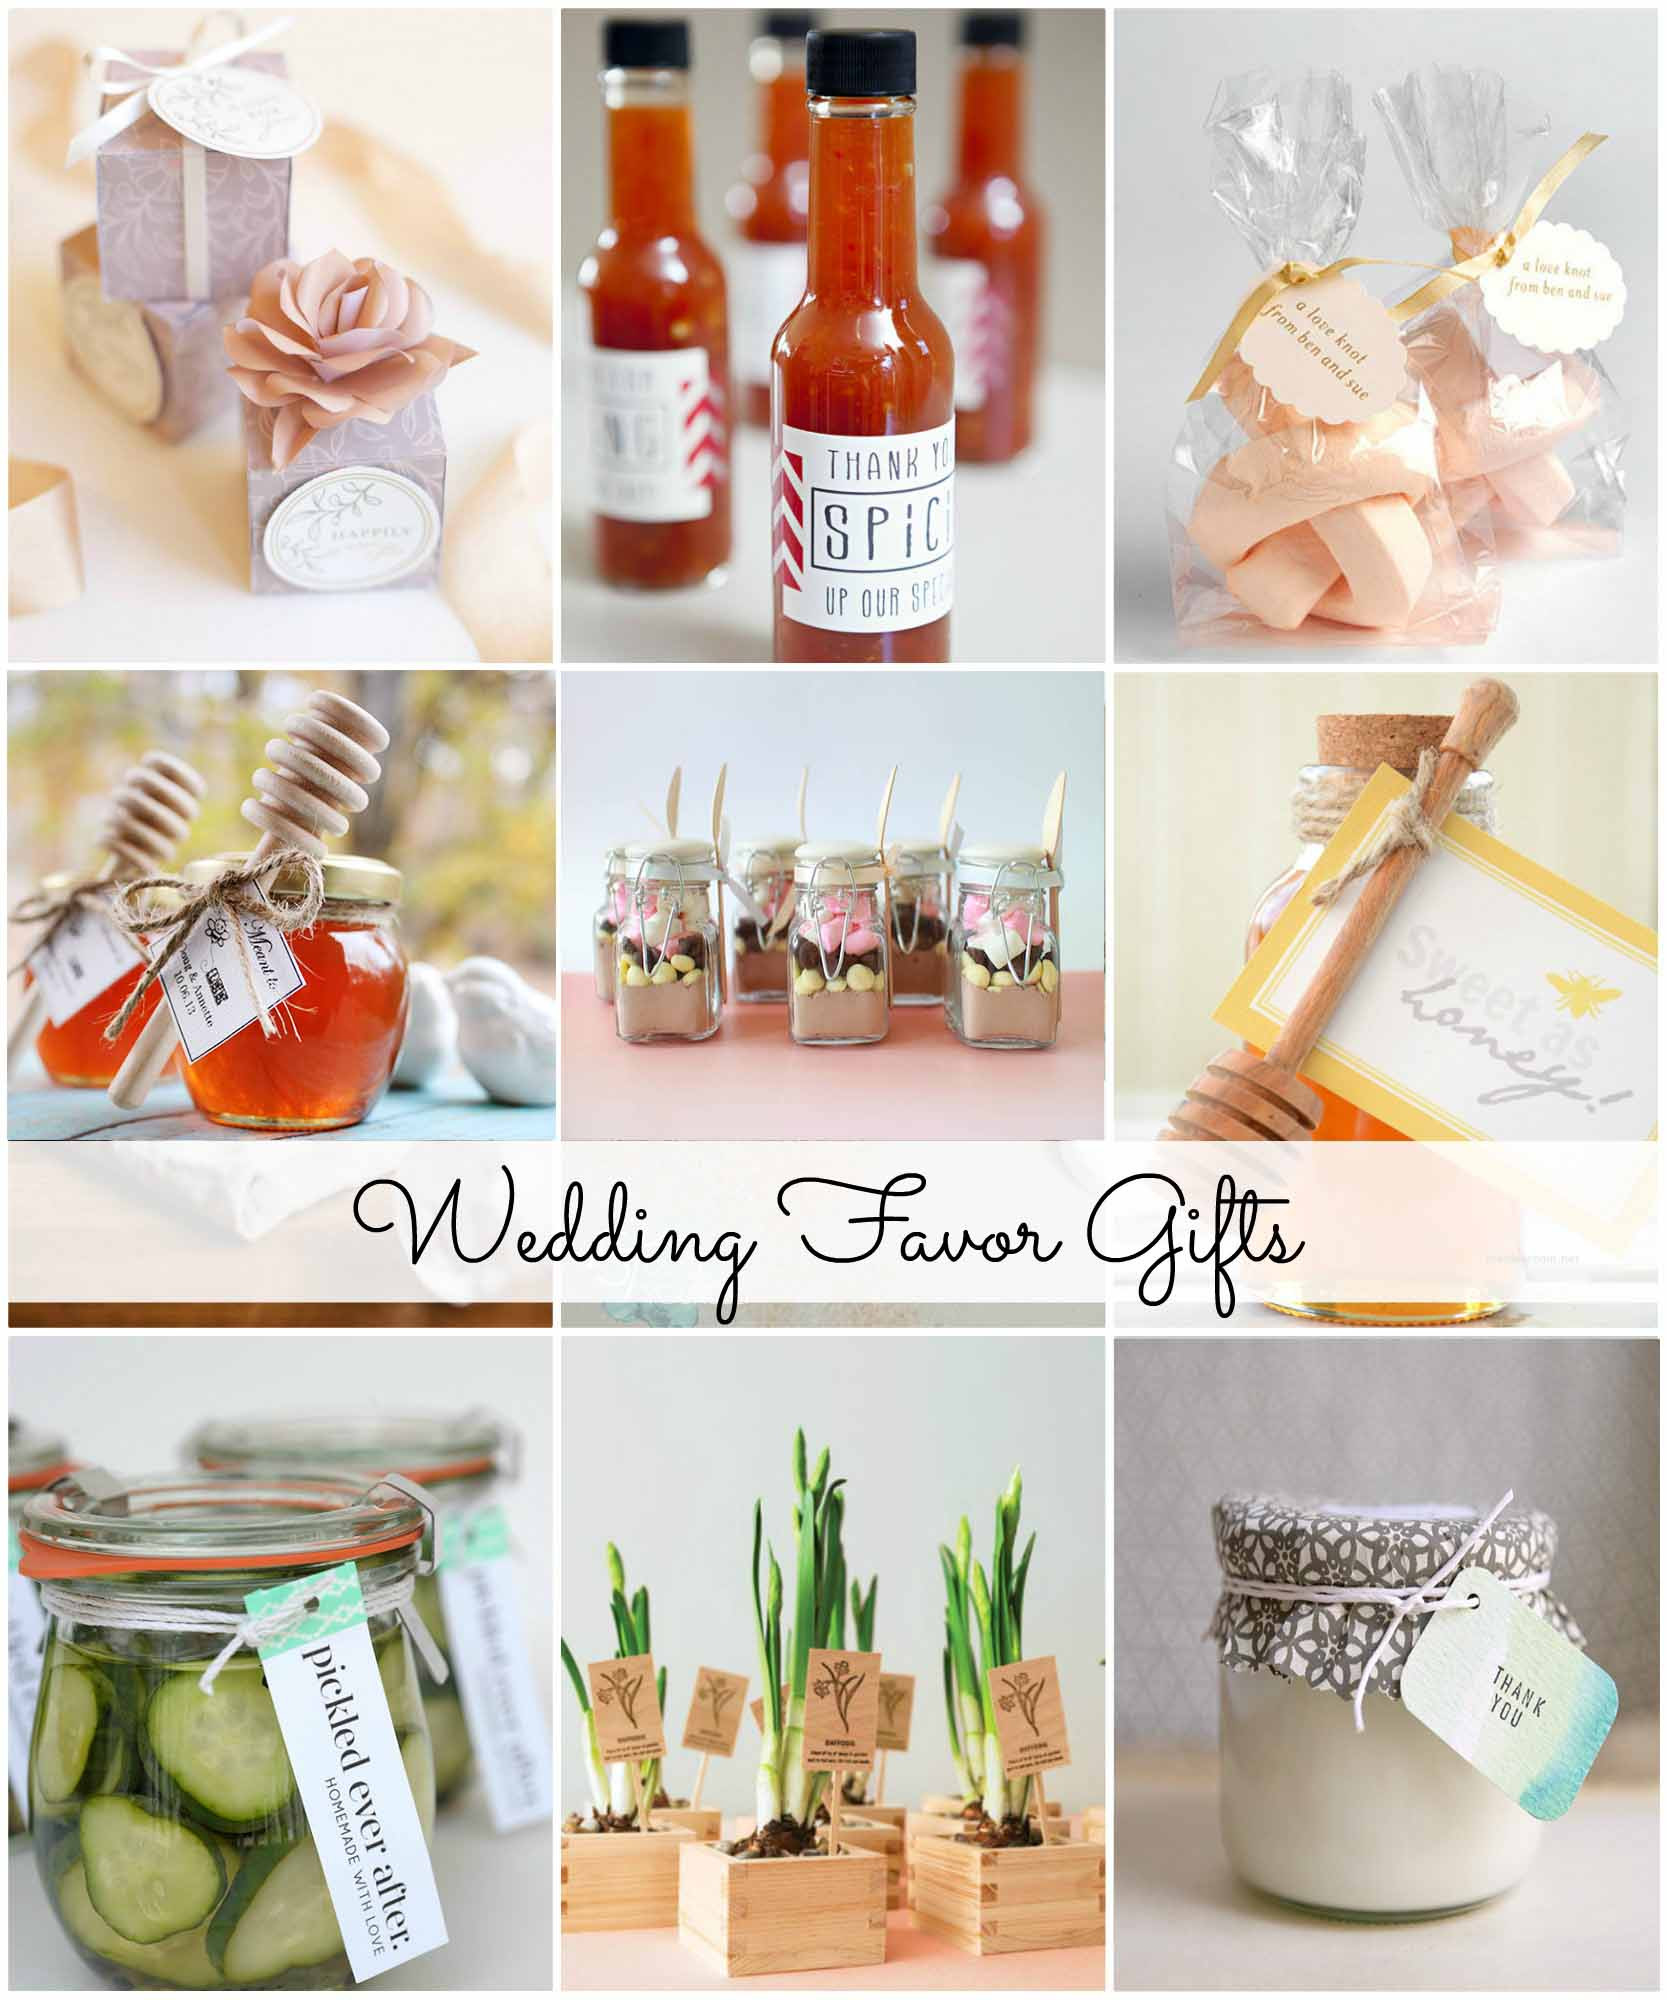 Best ideas about Wedding Guest Gift Ideas Cheap . Save or Pin Popular Inexpensive Wedding Favors For Your Guests Now.